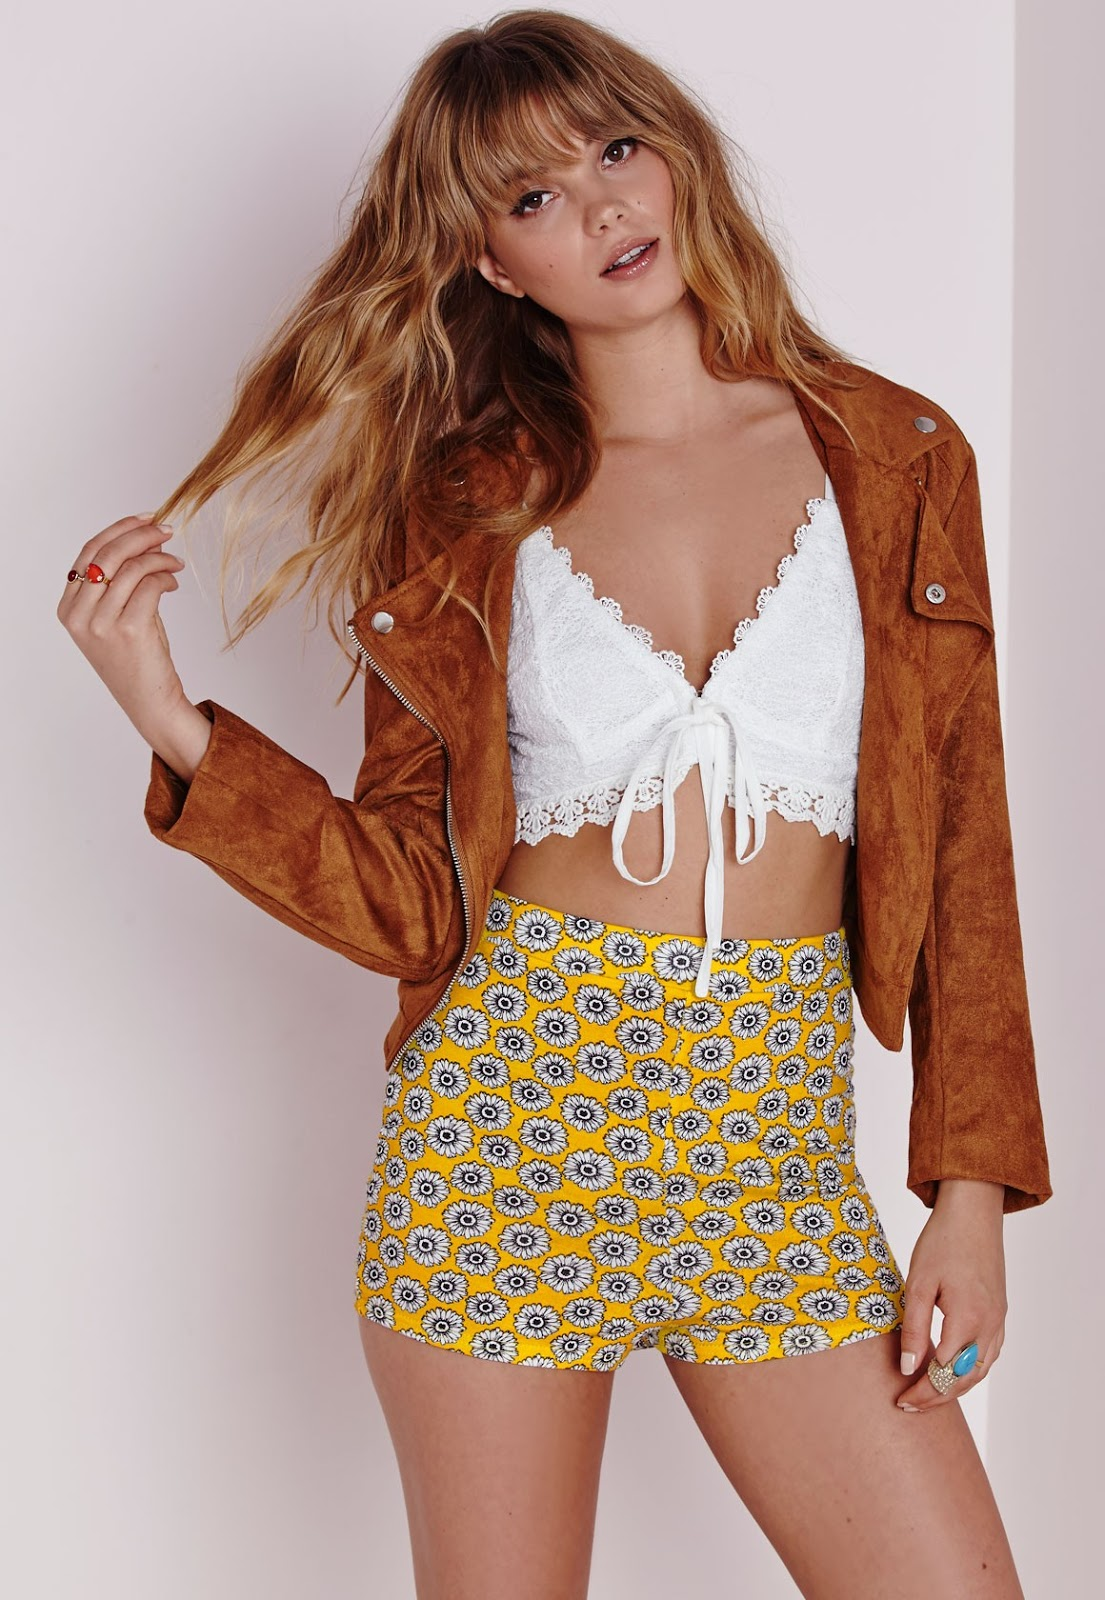 69c31f419c https   www.missguided.co.uk new-in clothing floral-print-hotpants-yellow